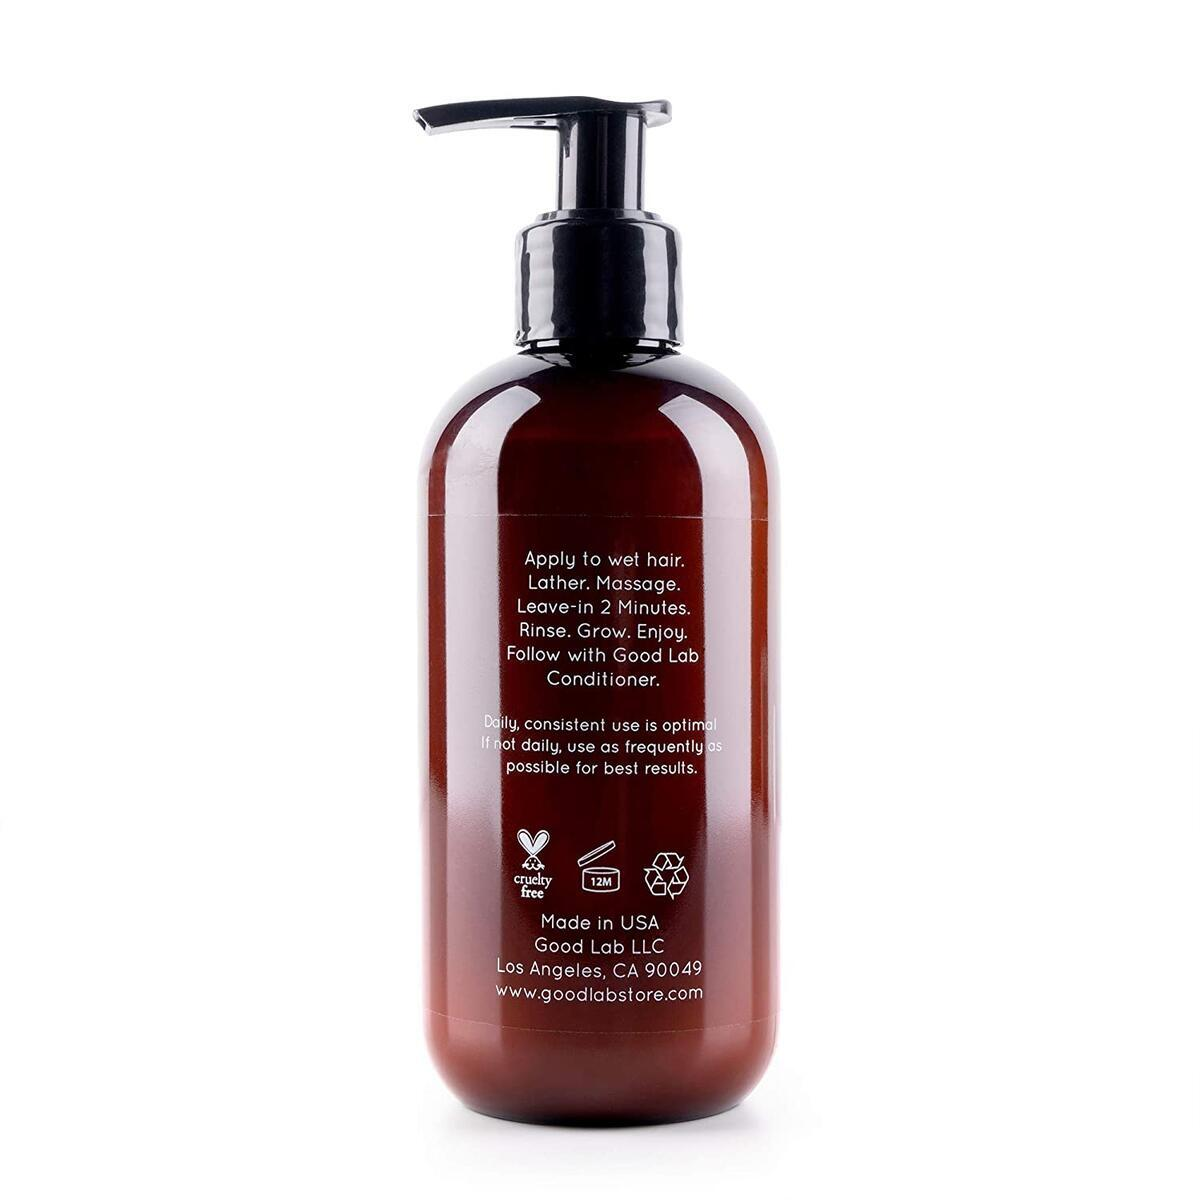 Good Lab Blooming & Thickening Shampoo for Hair Loss, Thinning, & Hair Growth - Packed with DHT Blockers & Antioxidants - Natural Ingredients - Sulfate-Free - For All Hair Types (8.5 Fl Oz)